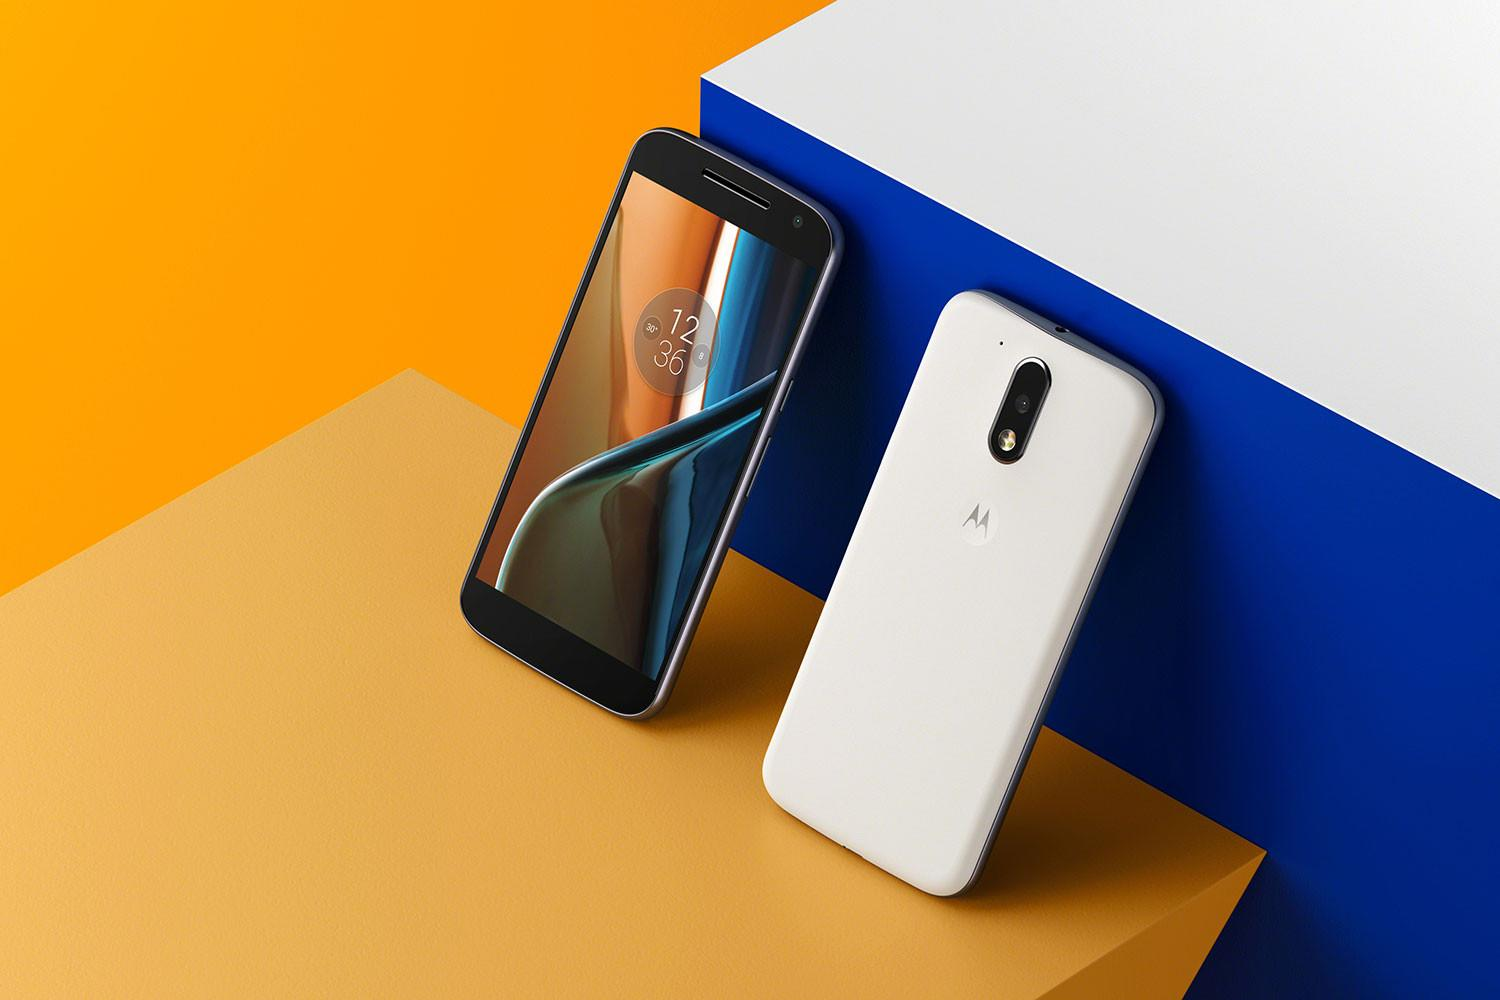 10 Moto G4 tips to help you get more from your budget phone